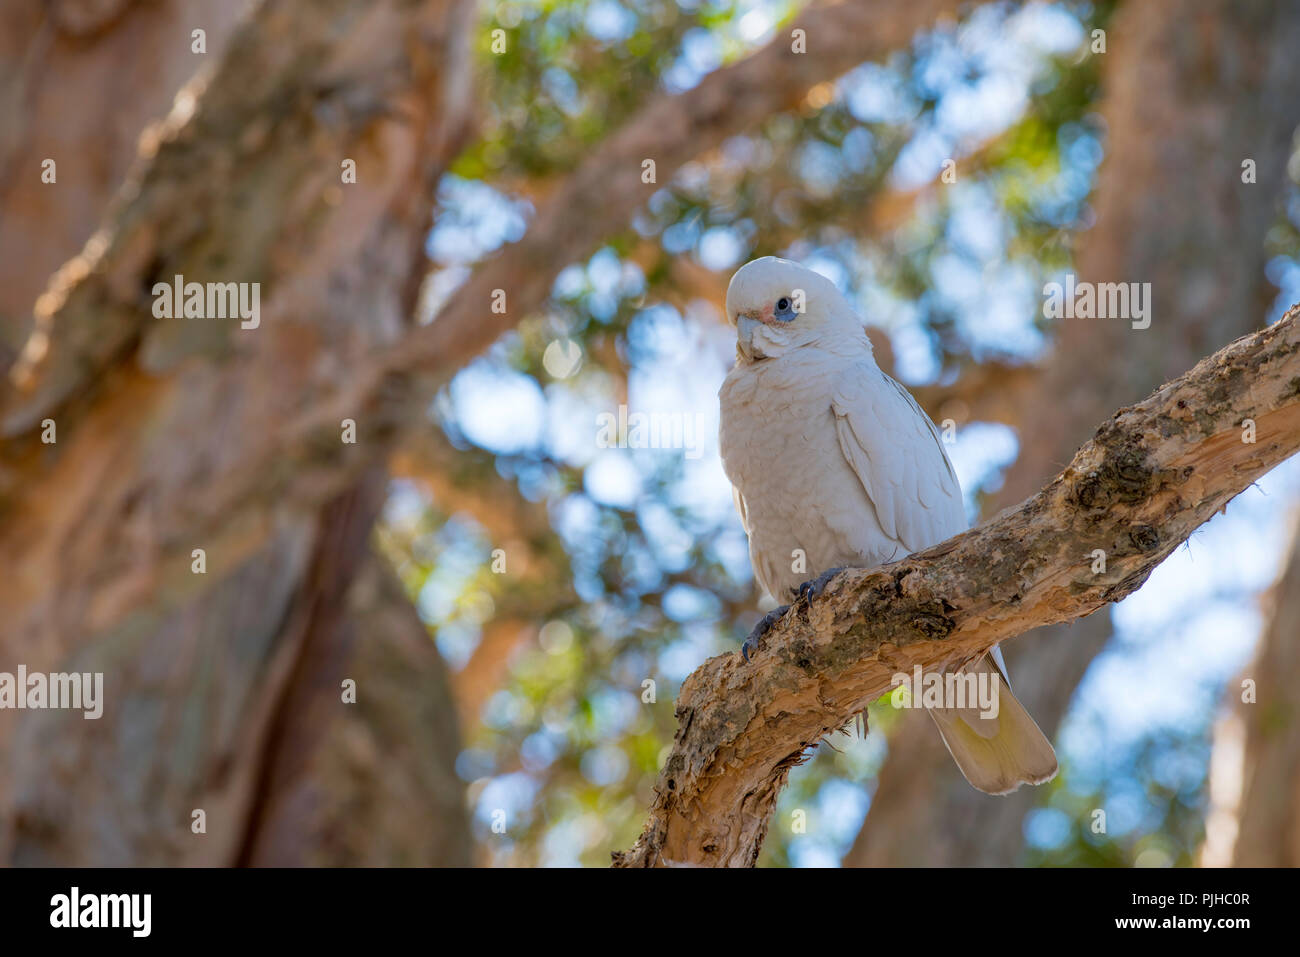 A Little Corella (Cacatua sanguinea) is smaller than its Sulphur Crested Cockatoo cousin and has a blue eye-ring and an adjacent pale pink patch - Stock Image